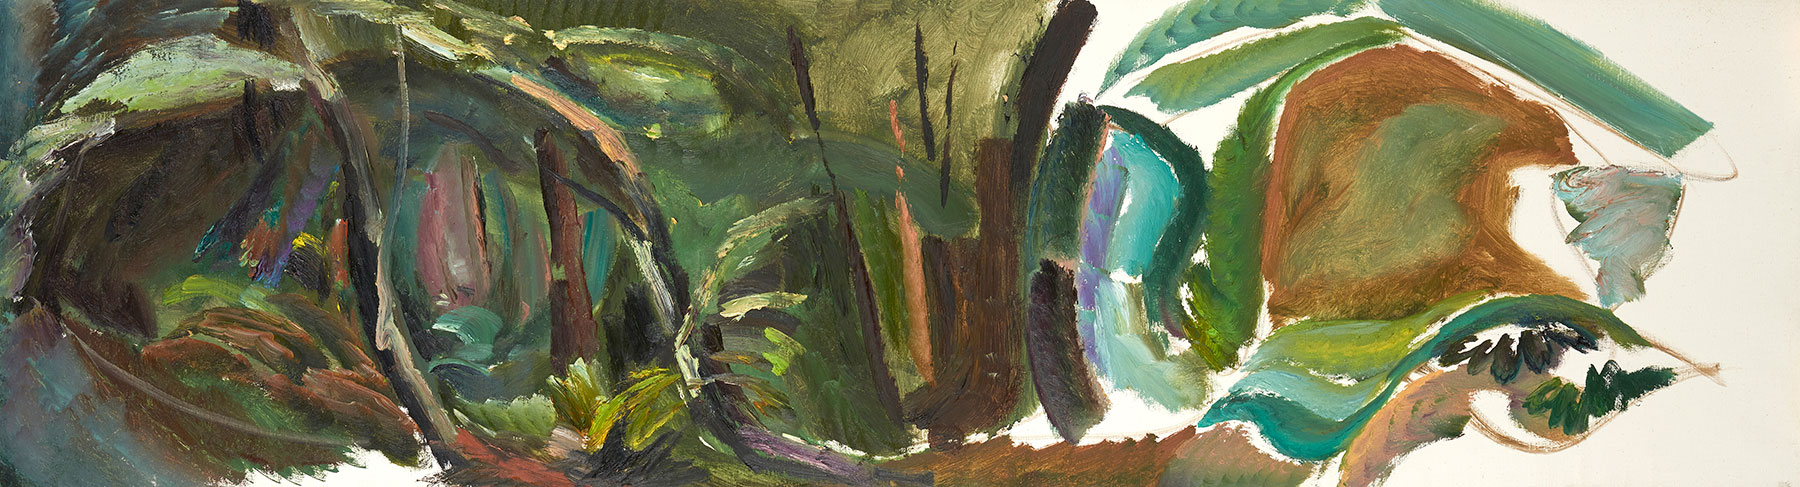 Farwood Summer Deepness, 1981, 50.5 x 183 cm, oil on canvas